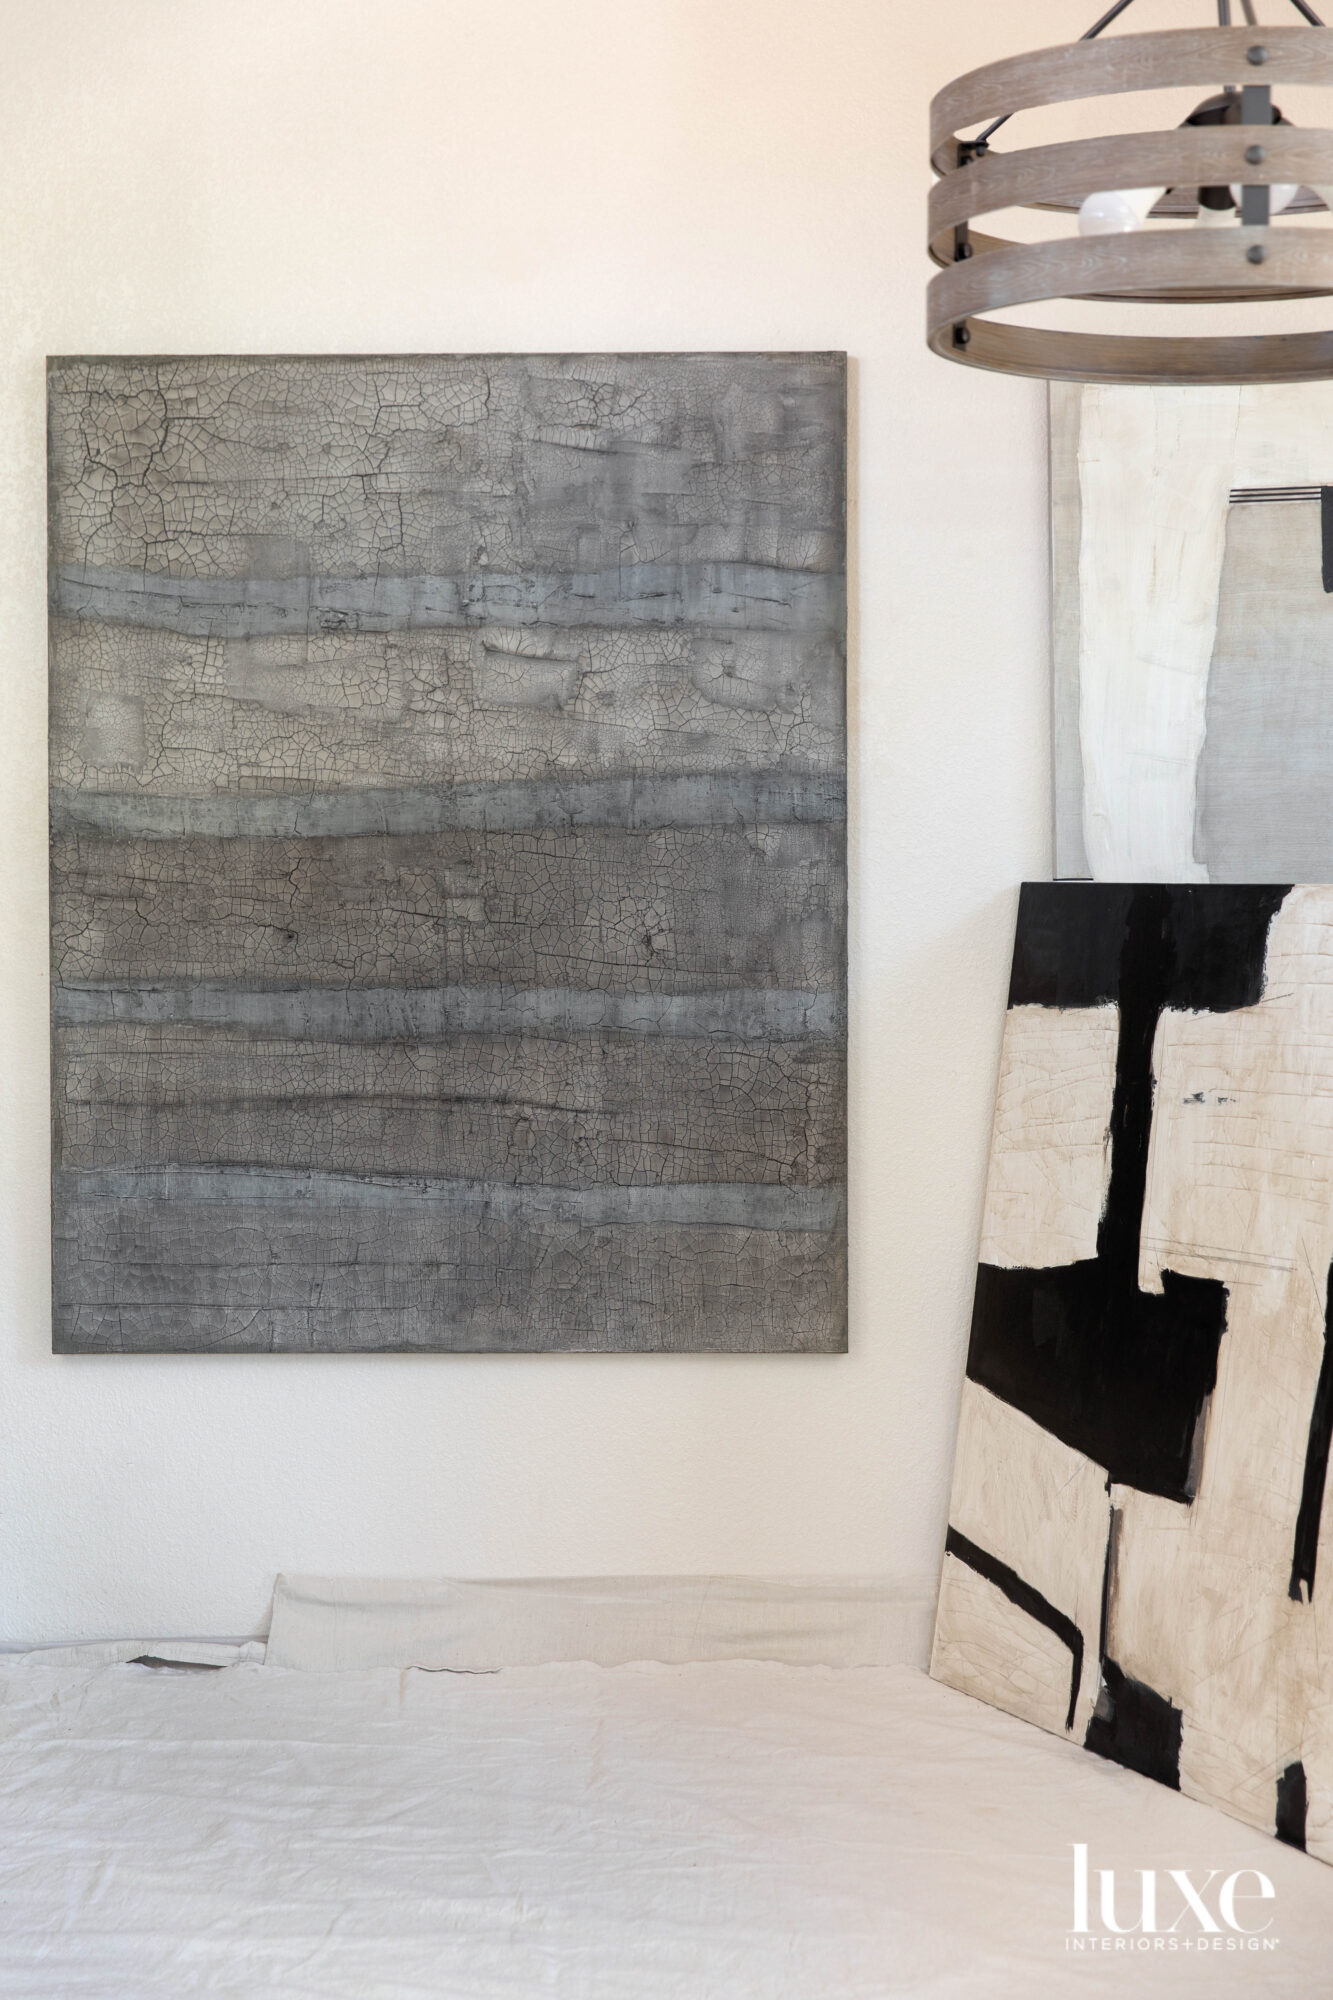 One gray painting on the left and a black-and-white painting on the right.